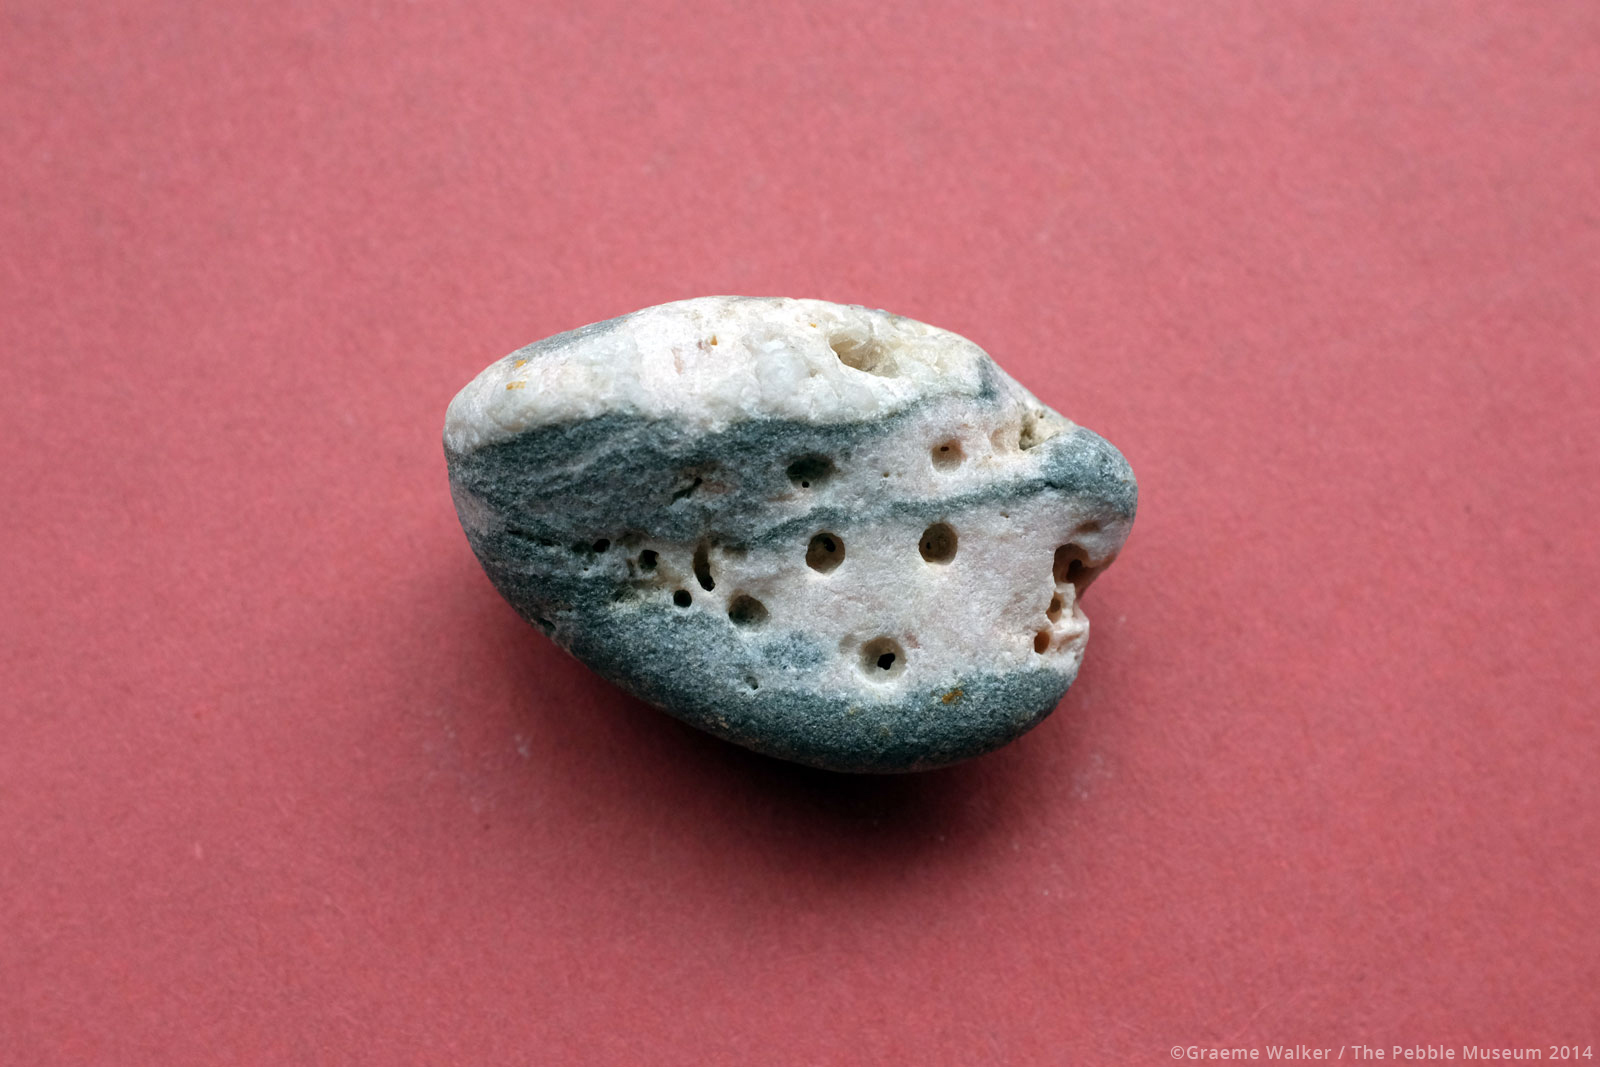 Grey and White Pebble with Holes © Graeme Walker / The Pebble Museum 2019